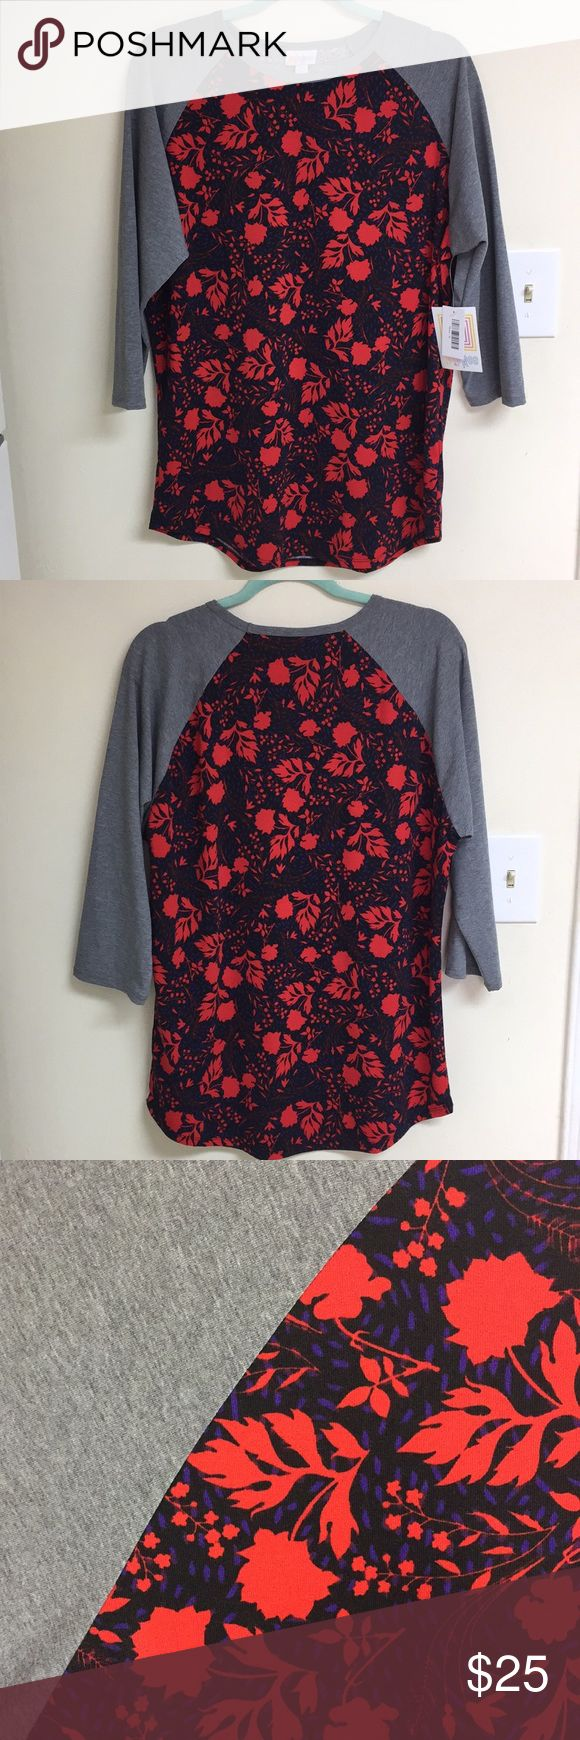 NWT Woman's Lularoe XL Randy Baseball Top Florals NWT Lularoe Randy Top Size XL Fits true to size Black main color body & gray sleeves Purple & red flowers NO DEFECTS  ~~~~~~~~~~ Pet friendly home  Smoker but not in the home  Any questions please ask before purchasing  NO RETURNS LuLaRoe Tops Tees - Long Sleeve